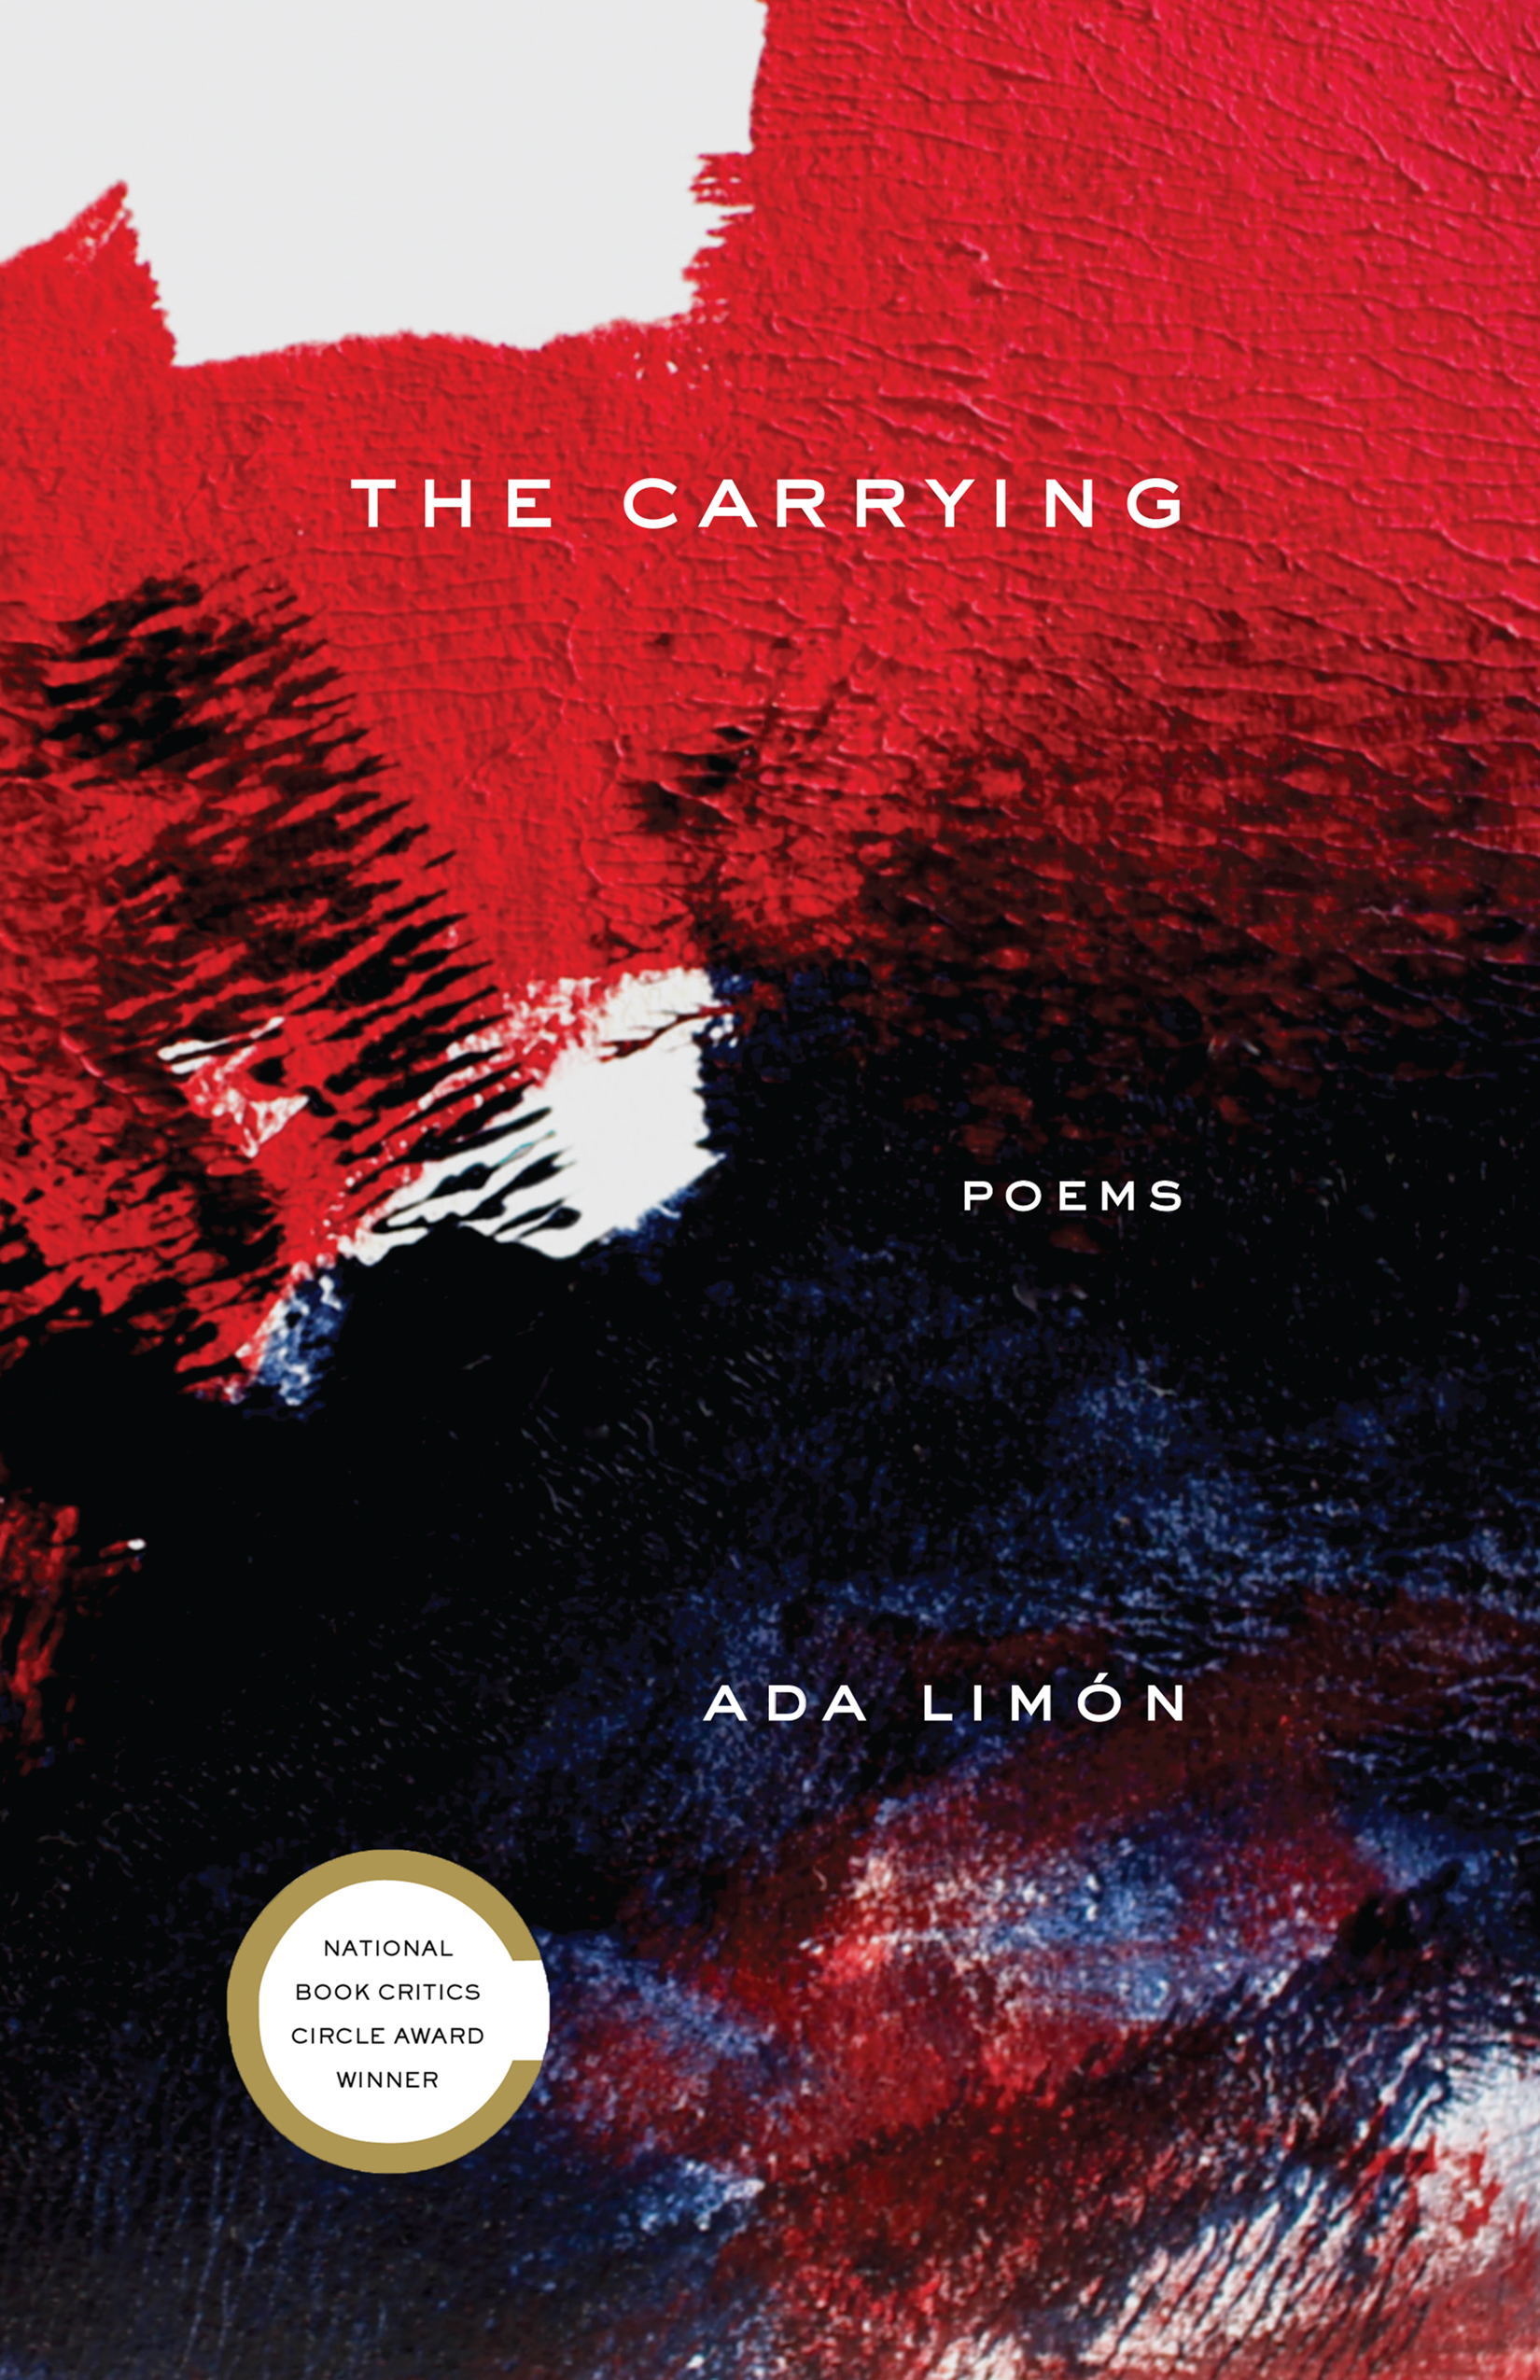 The Carrying by Ada Limón (Milkweed Editions)